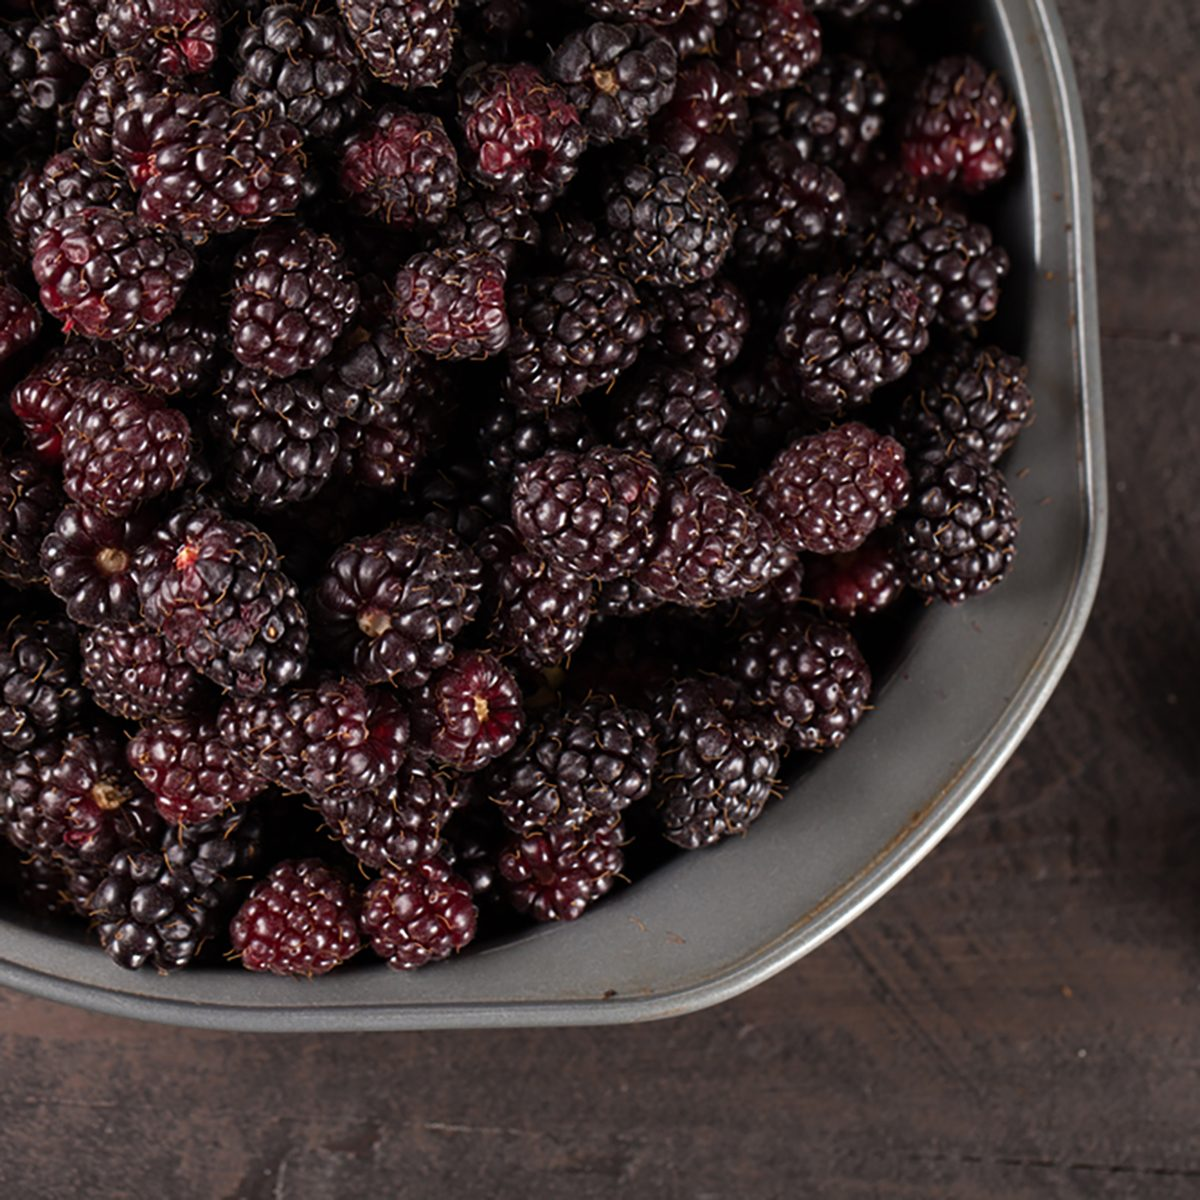 Harvested Boysenberries in silver tin container above shot on dark wooden background